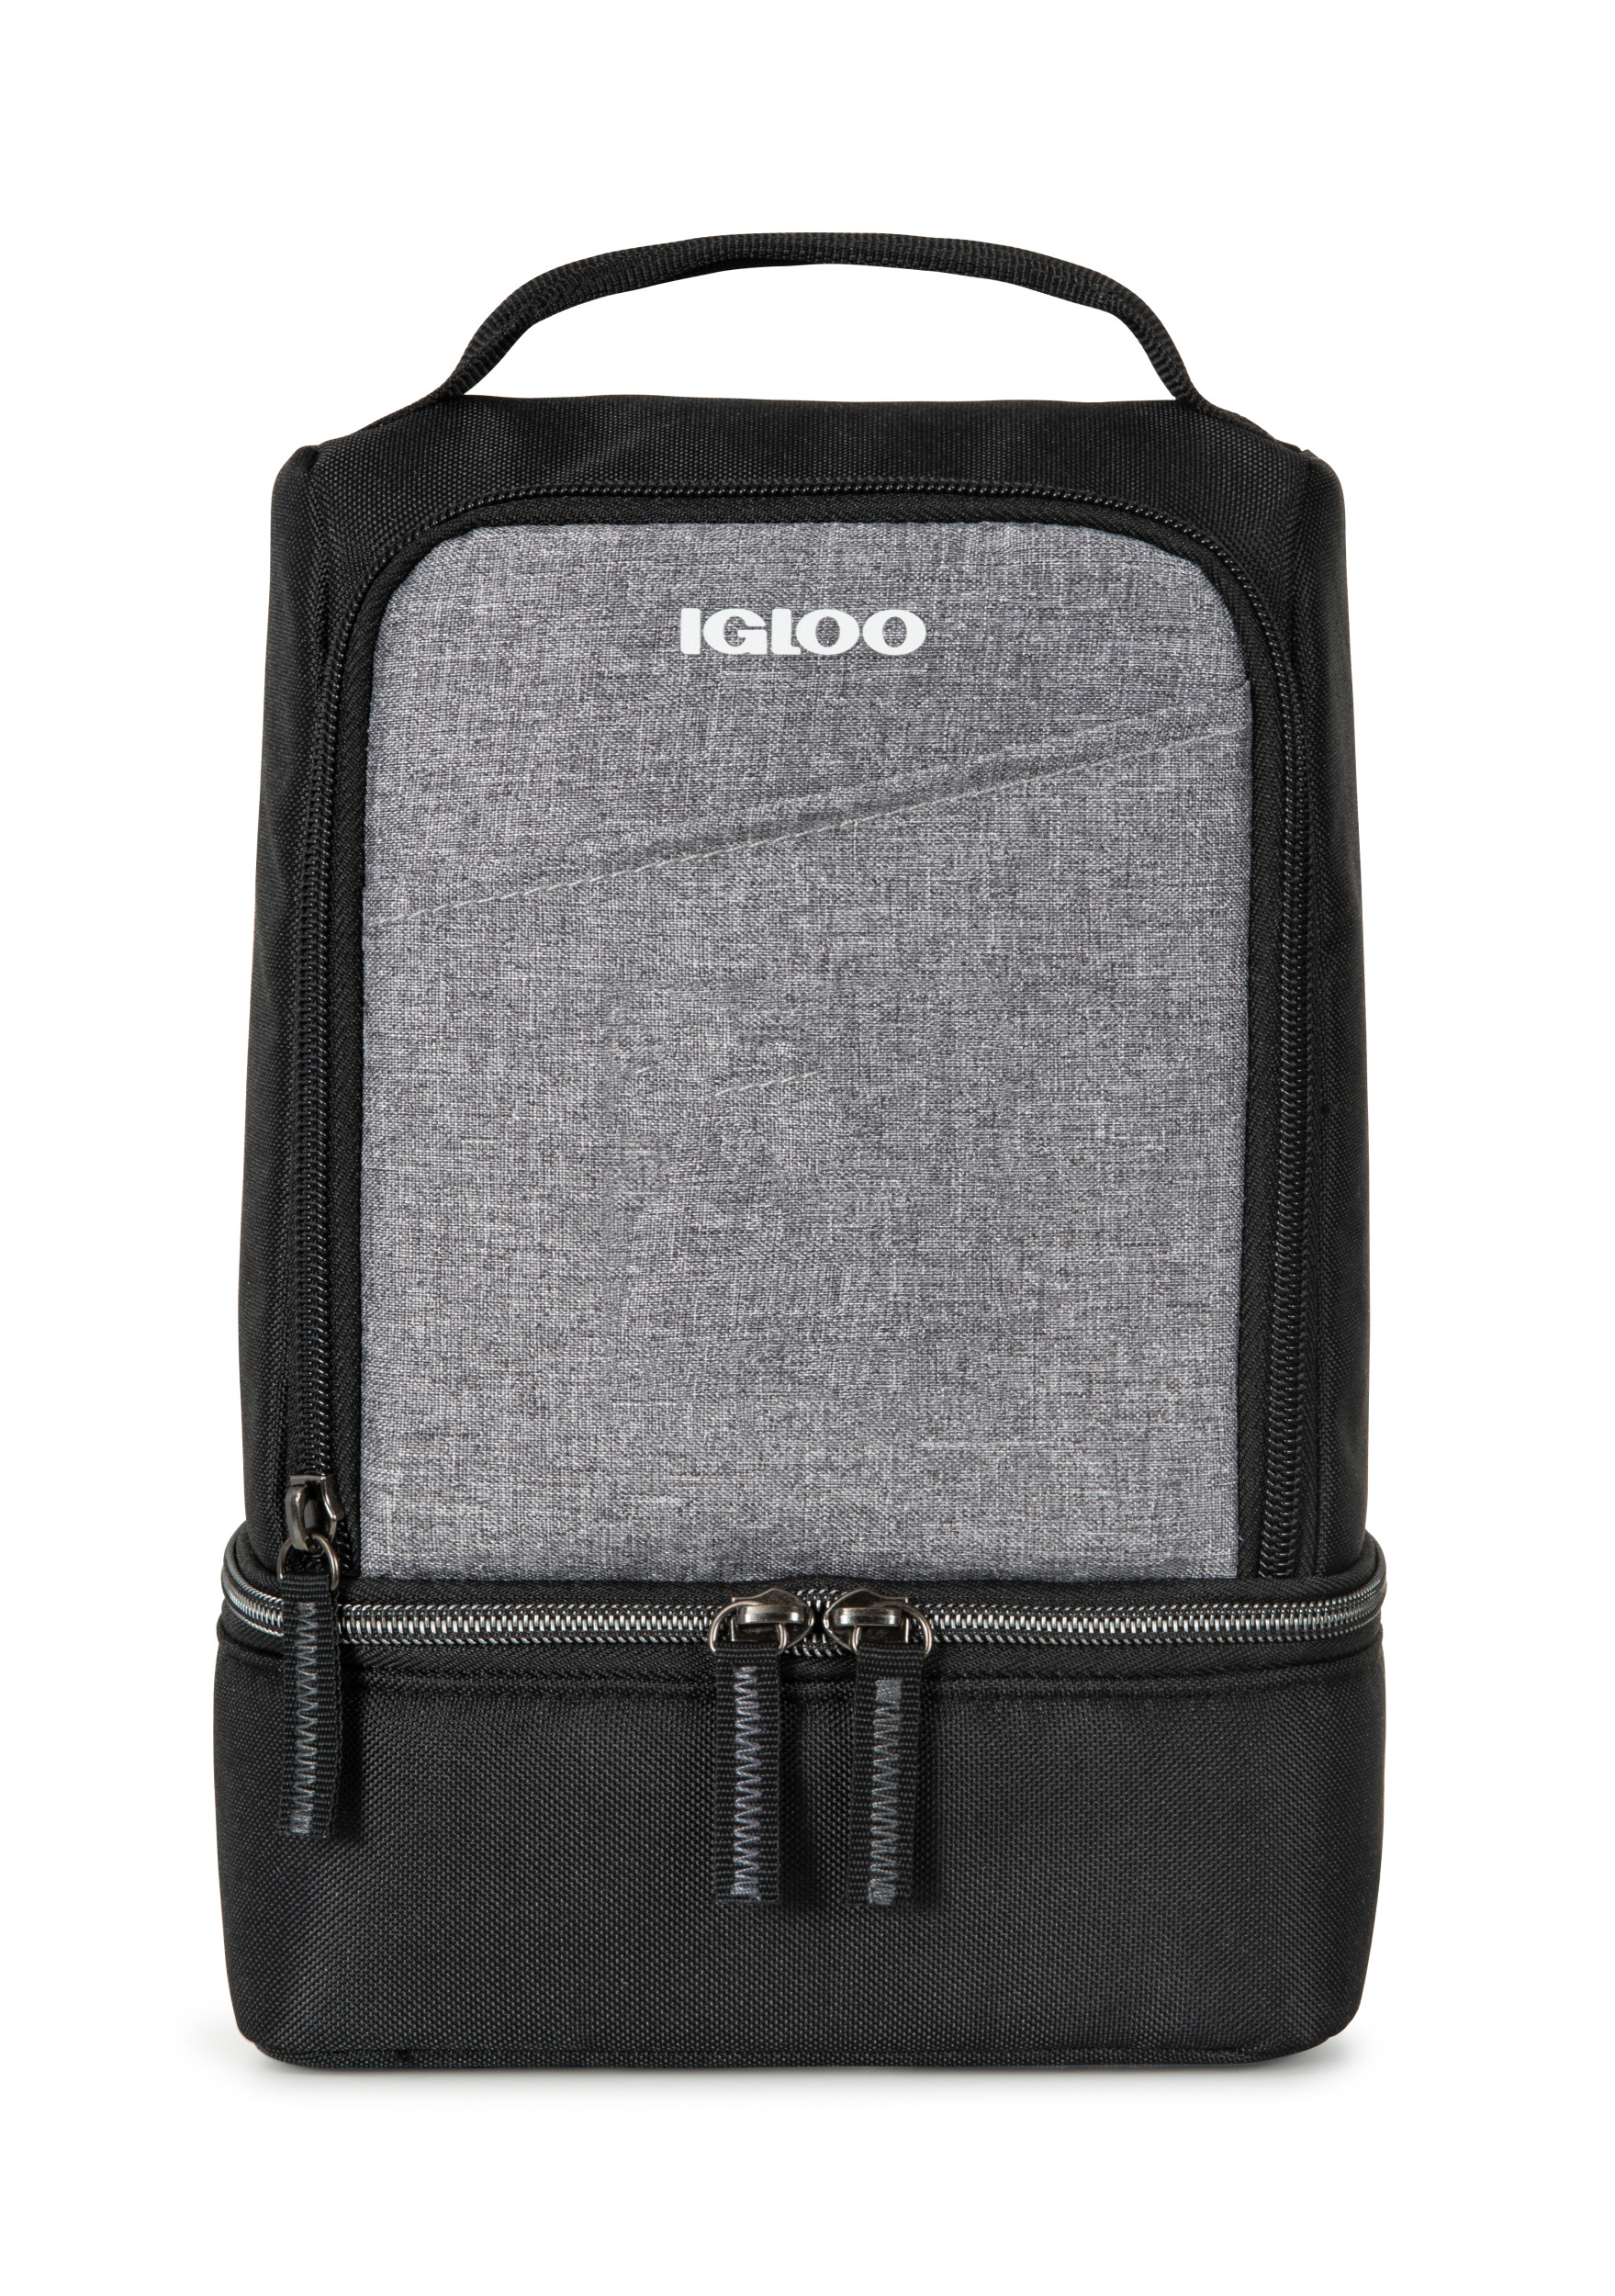 Igloo 100060 - Rowan Lunch Cooler